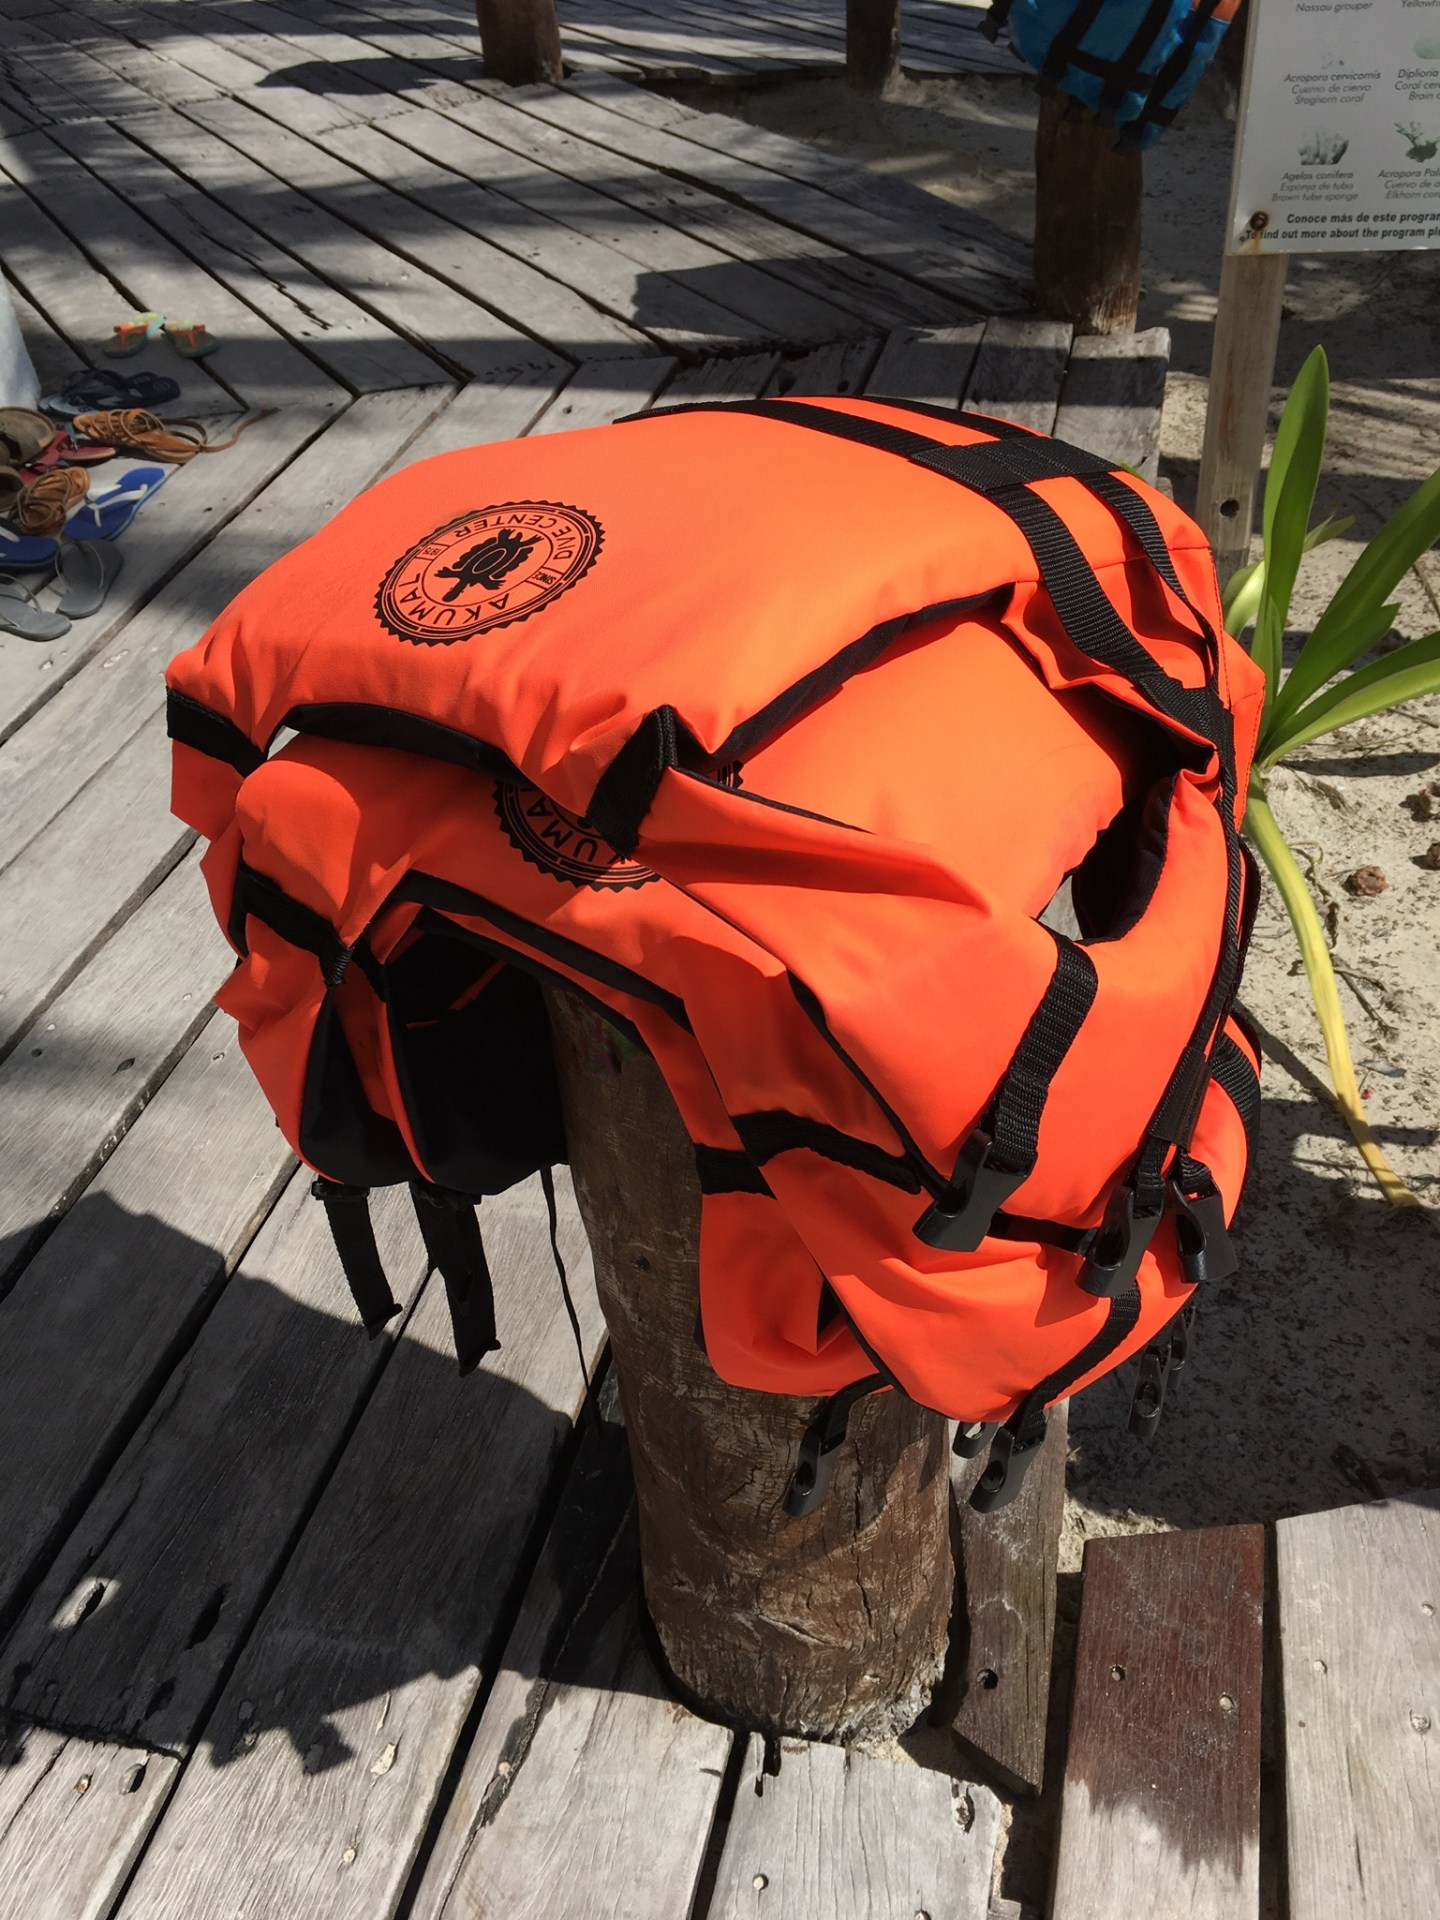 lifejackets aren't mandatory but useful while snorkelling with turtles at Akumal